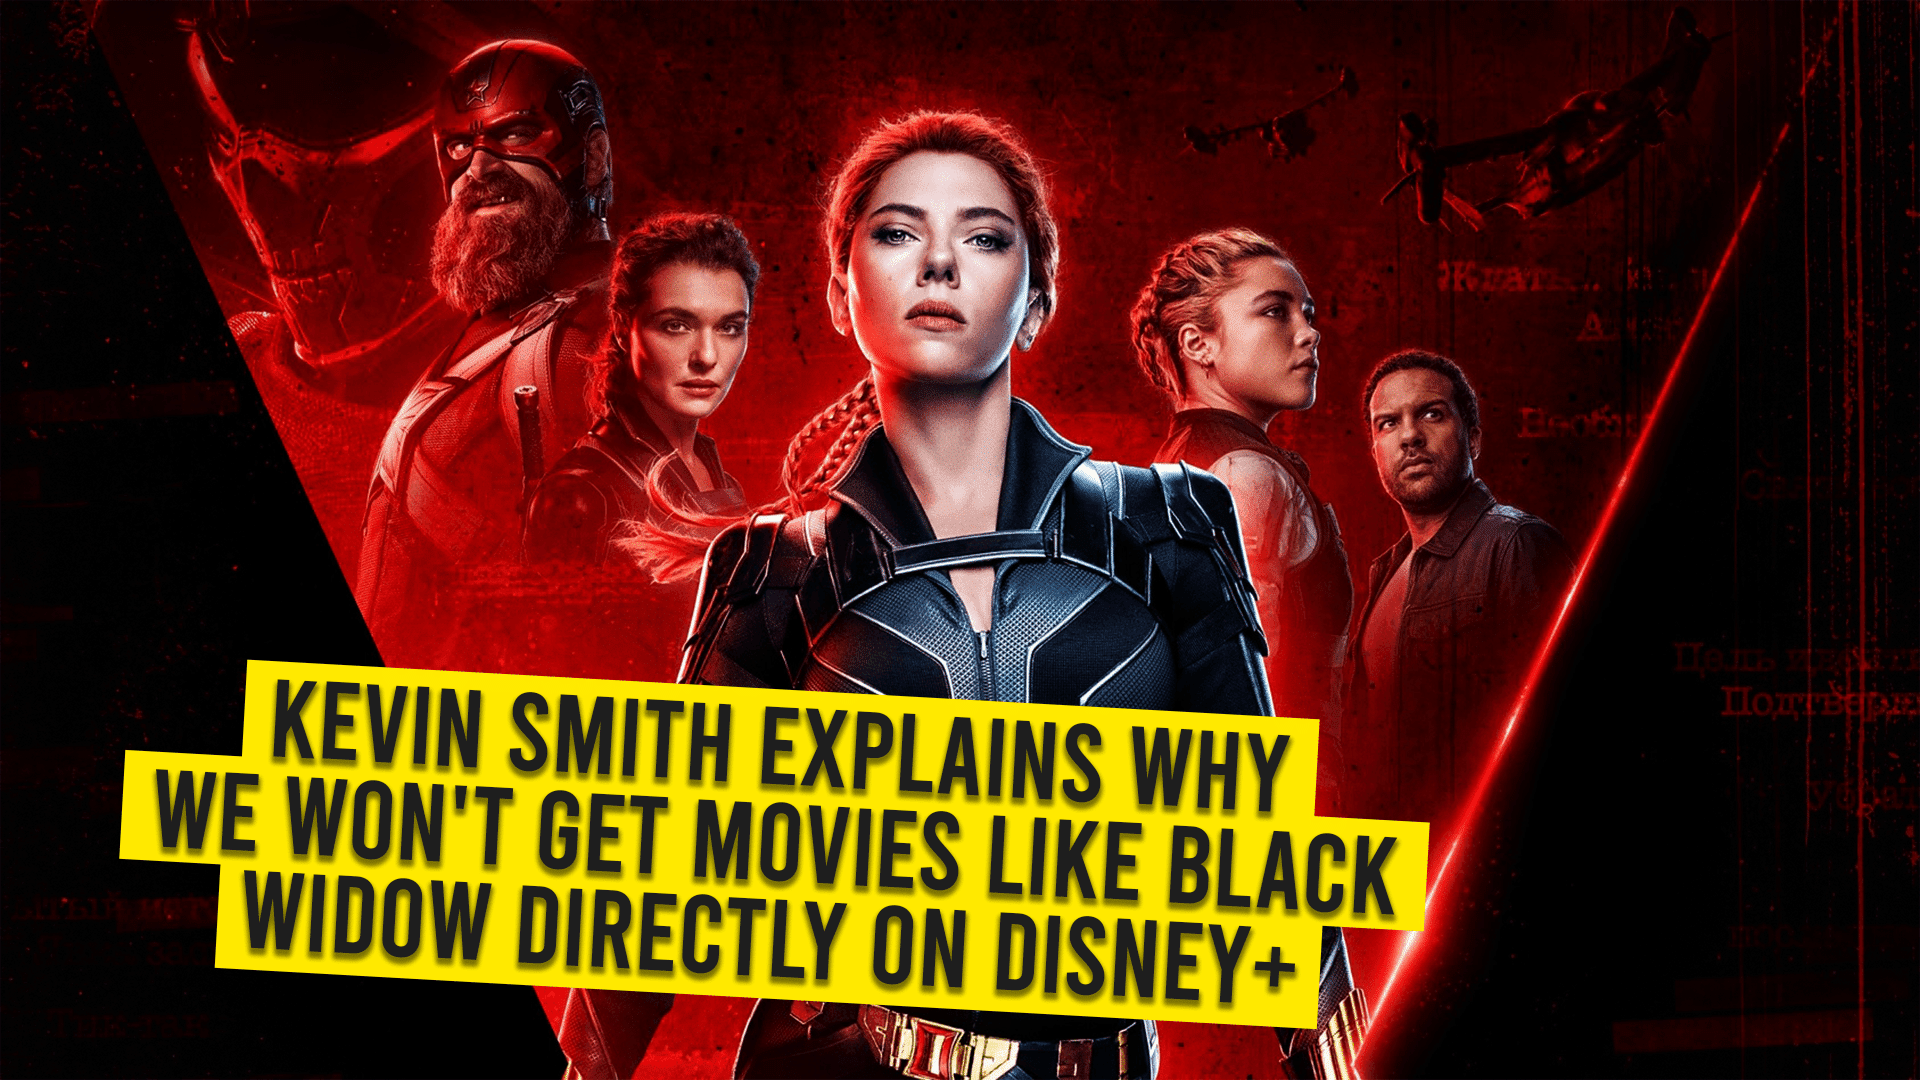 Kevin Smith Explains Why We Won't Get Movies Like Black Widow Directly On Disney+